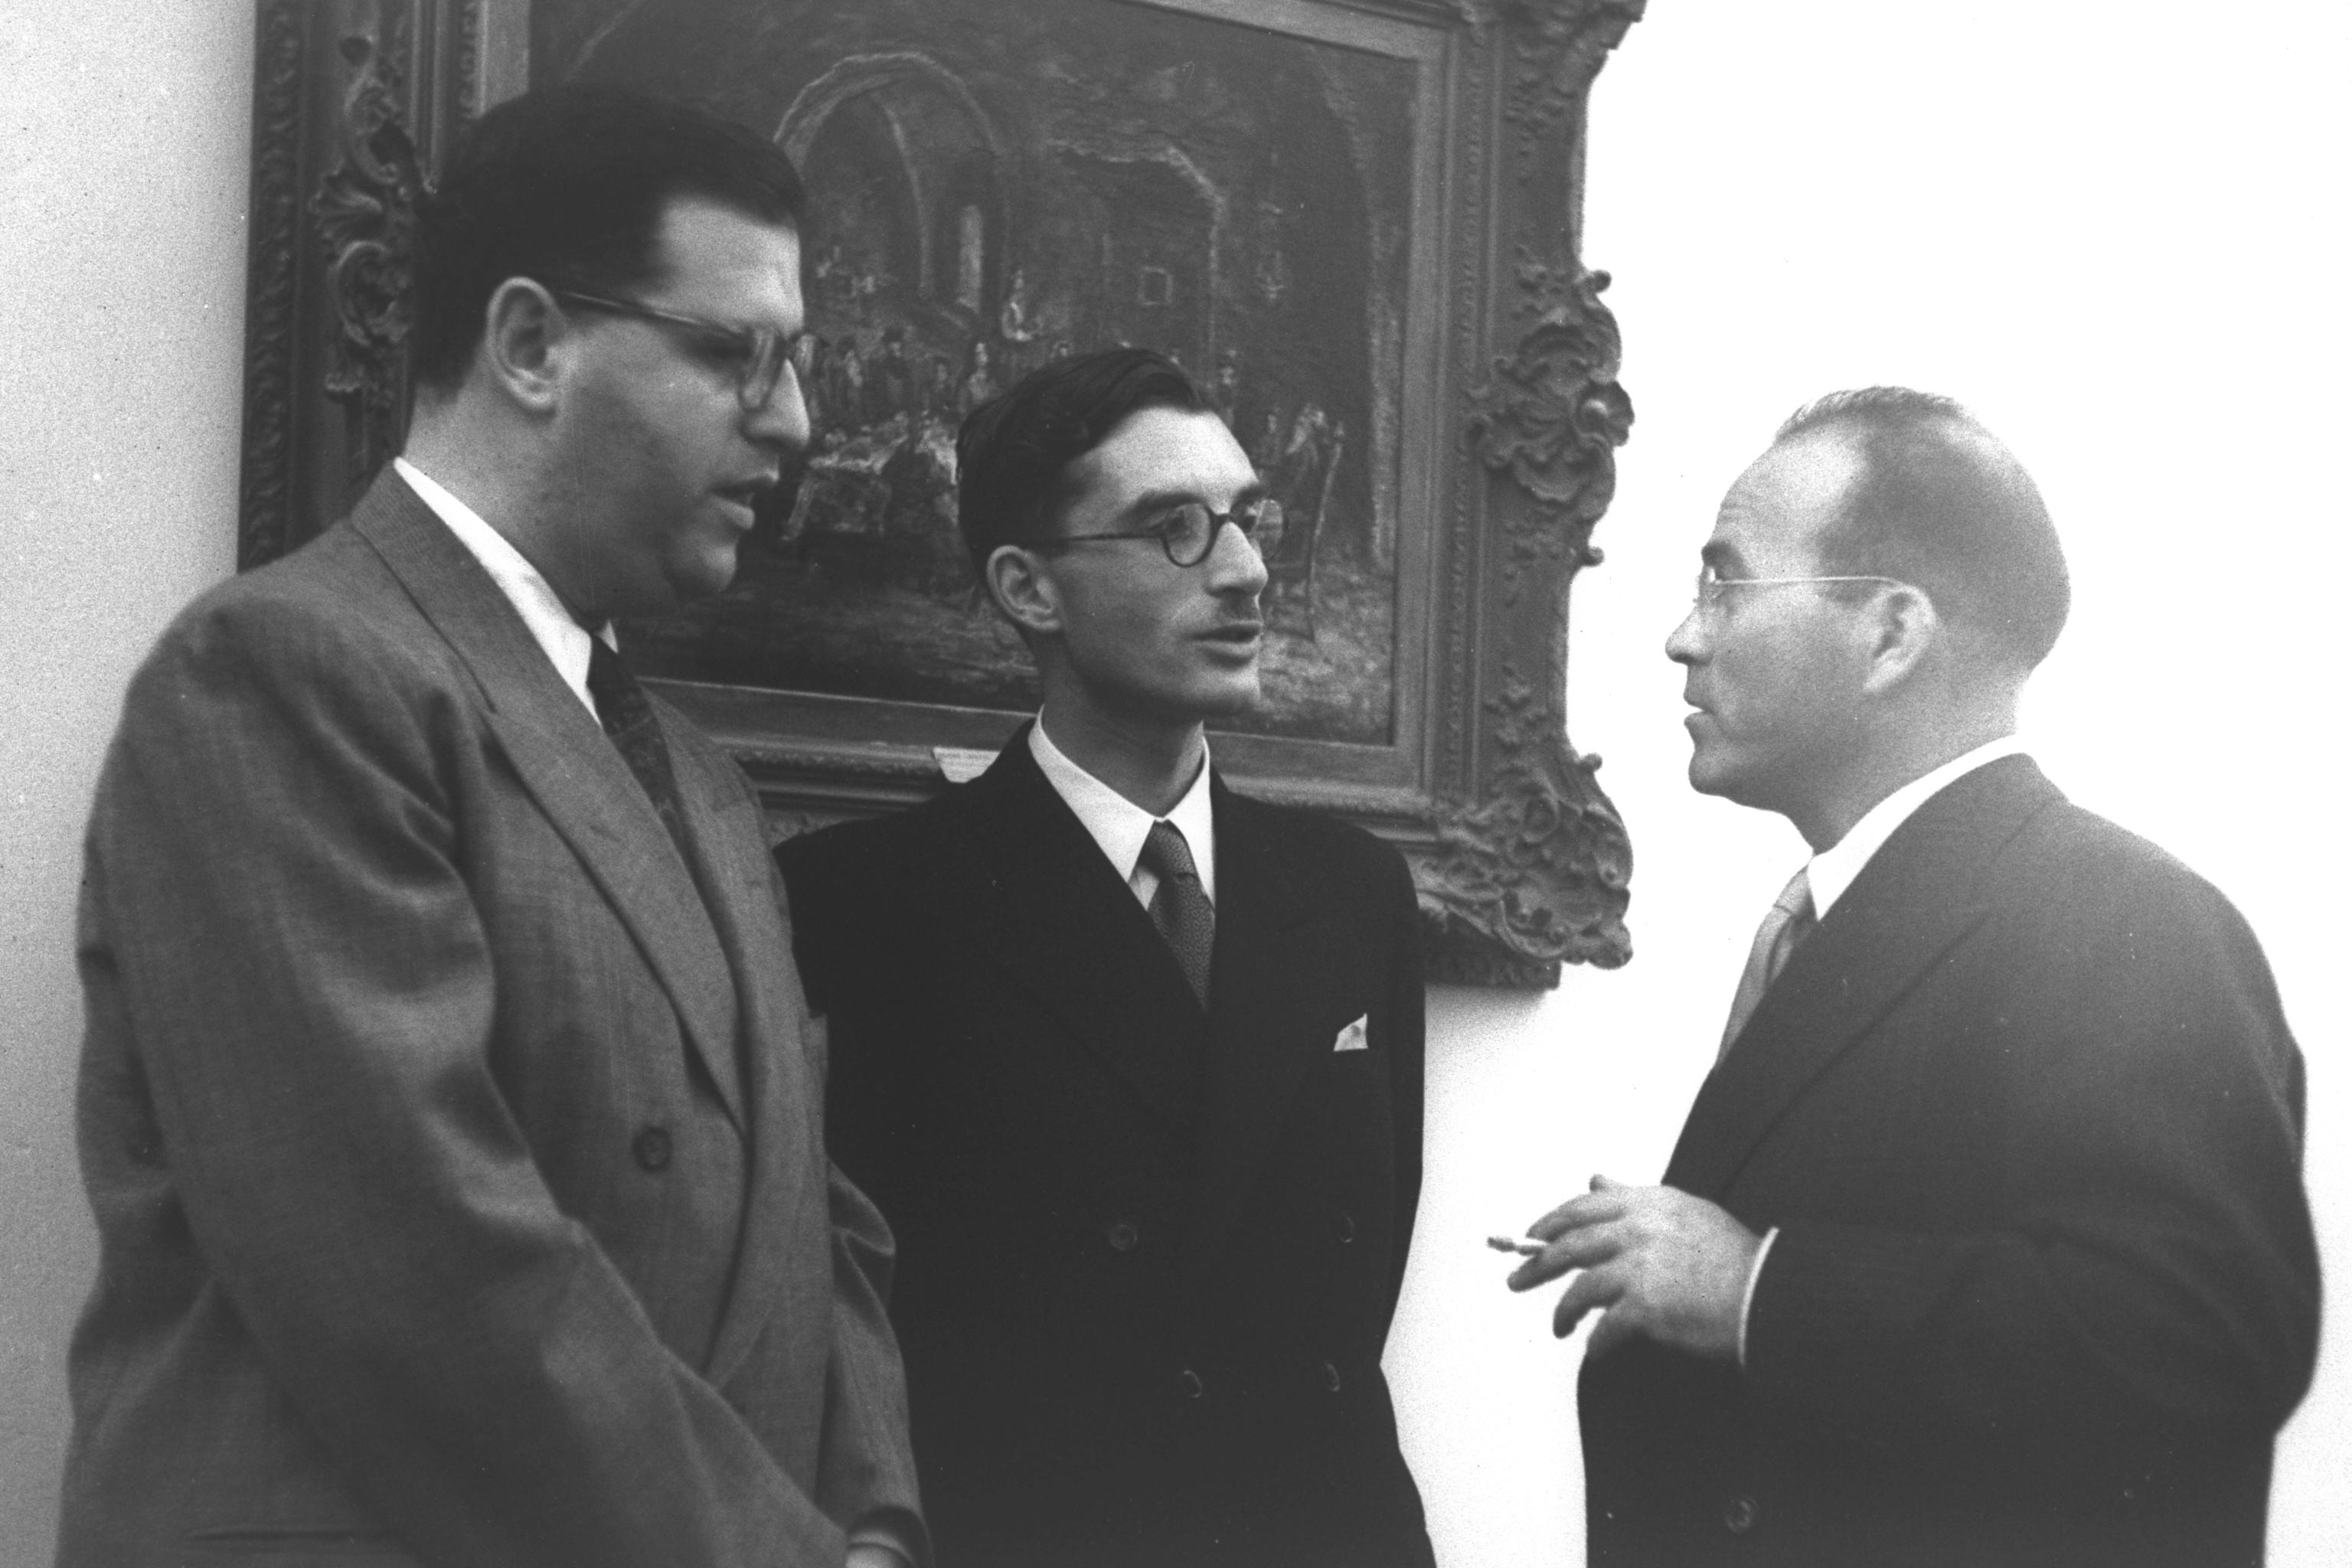 Israeli foreign ministry officials (from left) [[Abba Eban]], Shabtai Rosenne, and [[Reuven Shiloah]], July 1949.